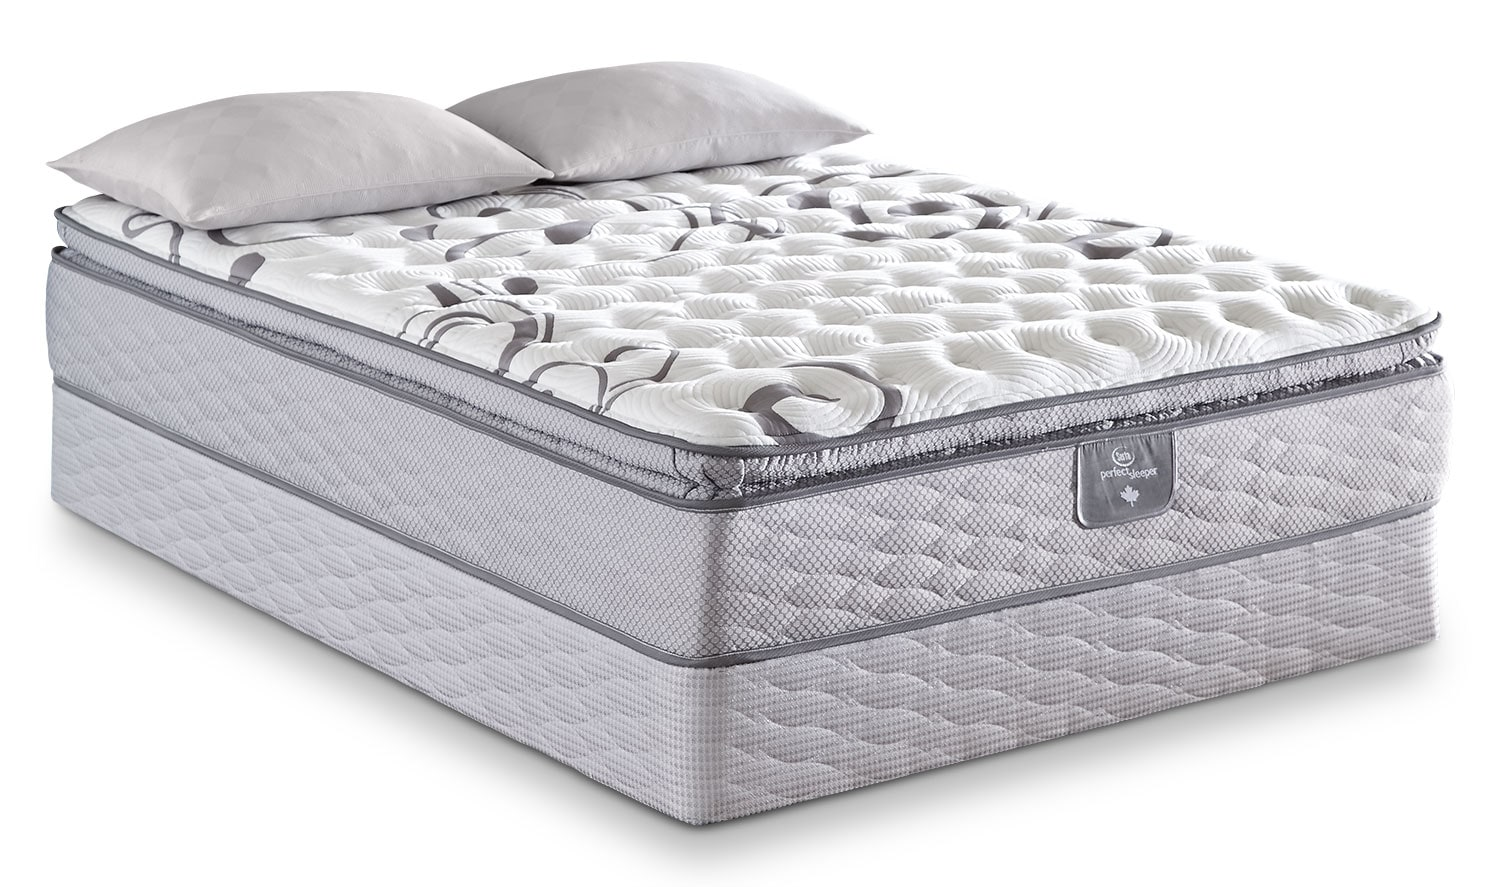 Serta Perfect Sleeper Valebridge Pillow-Top Firm Full Mattress Set